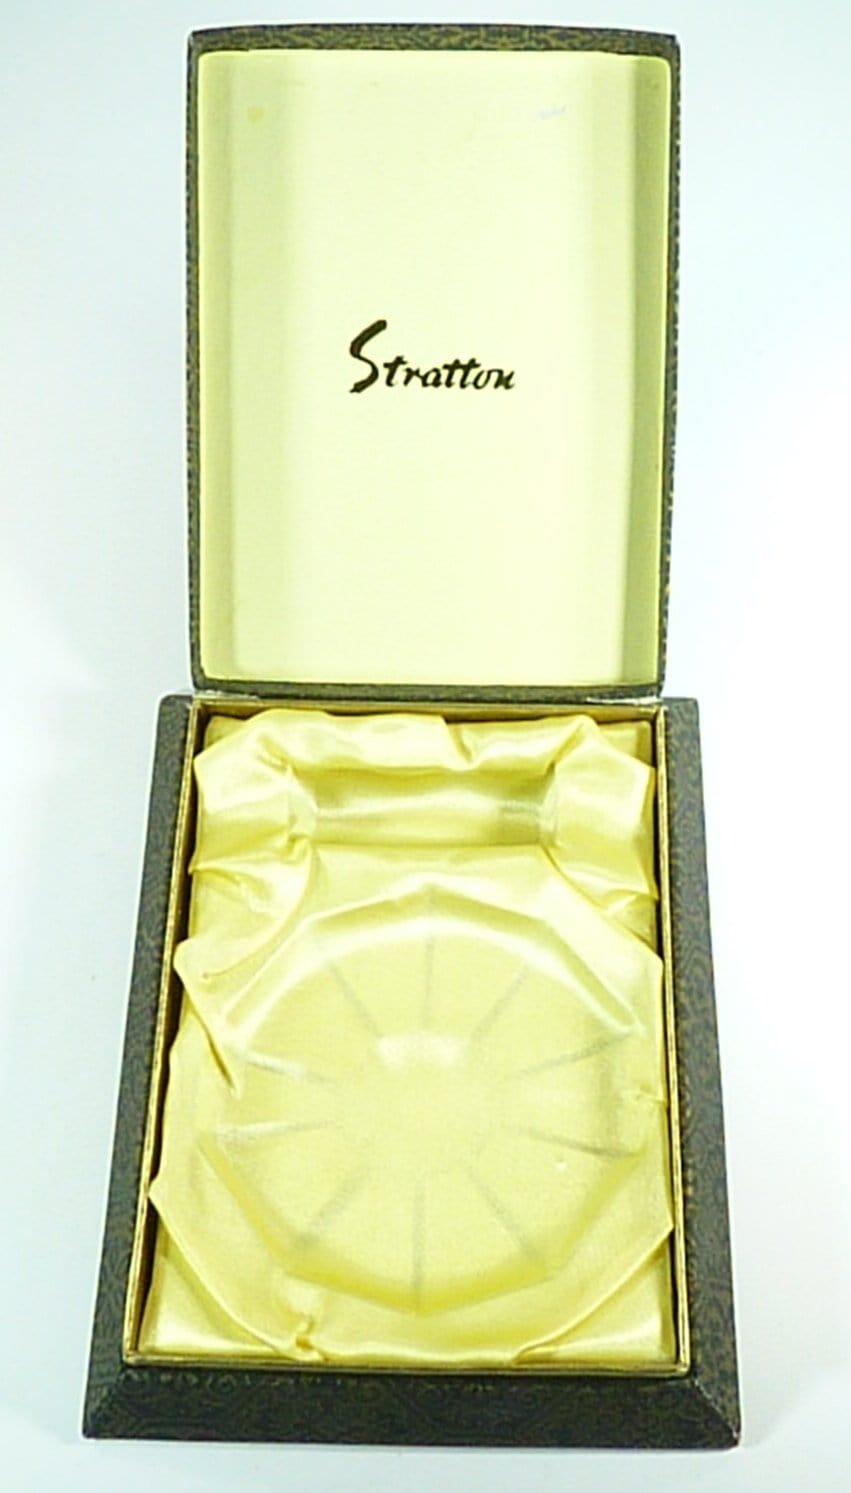 Stratton Vanity Set In the Original Box